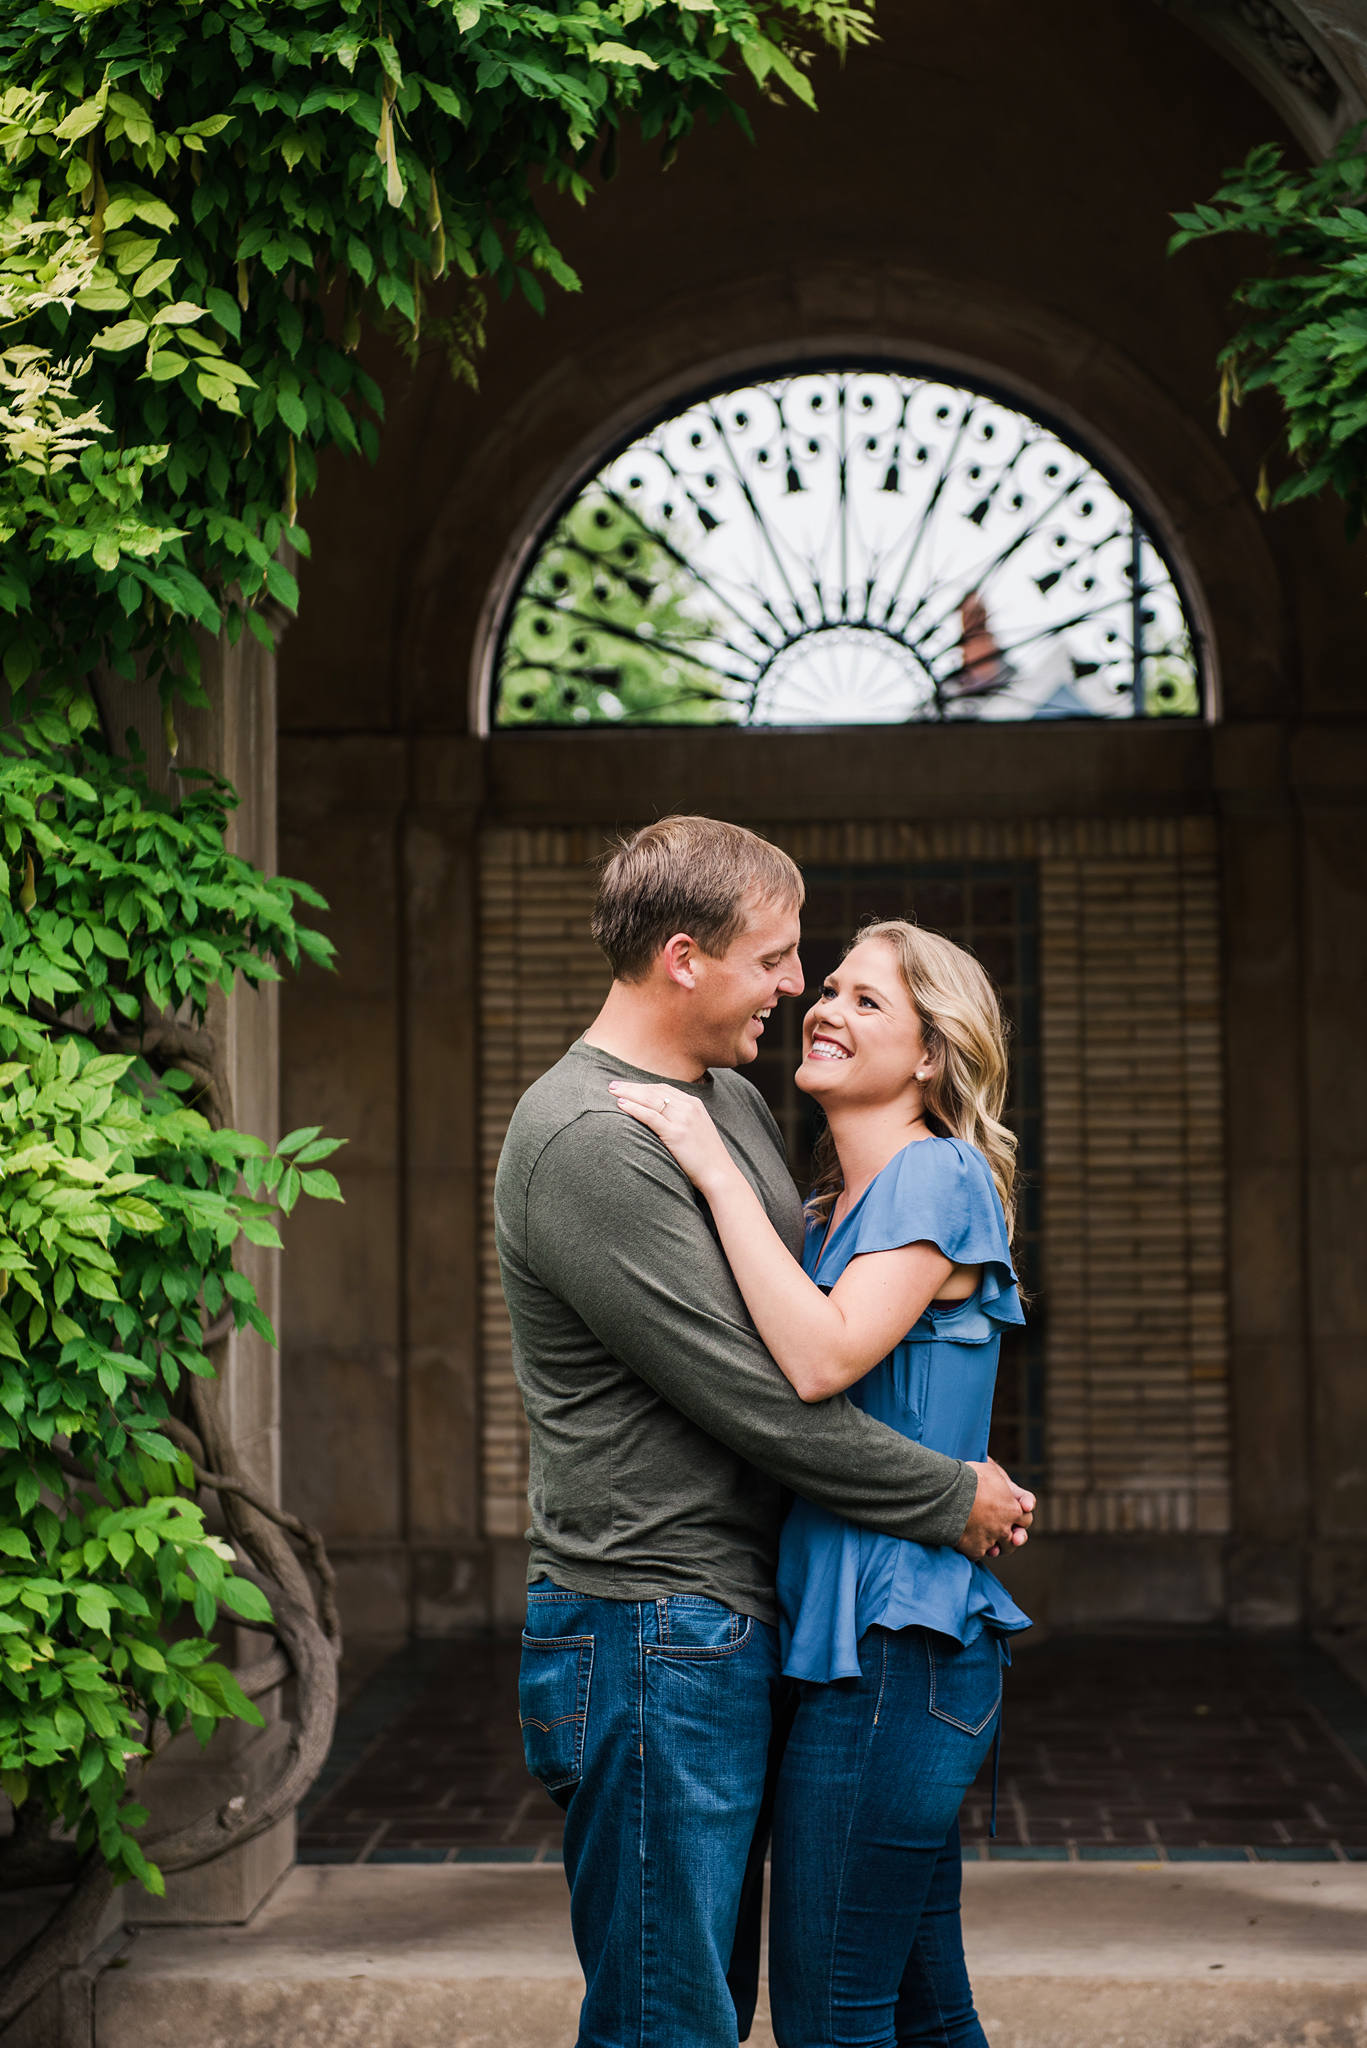 George_Eastman_House_Rochester_Yacht_Club_Rochester_Engagement_Session_JILL_STUDIO_Rochester_NY_Photographer_DSC_7973.jpg